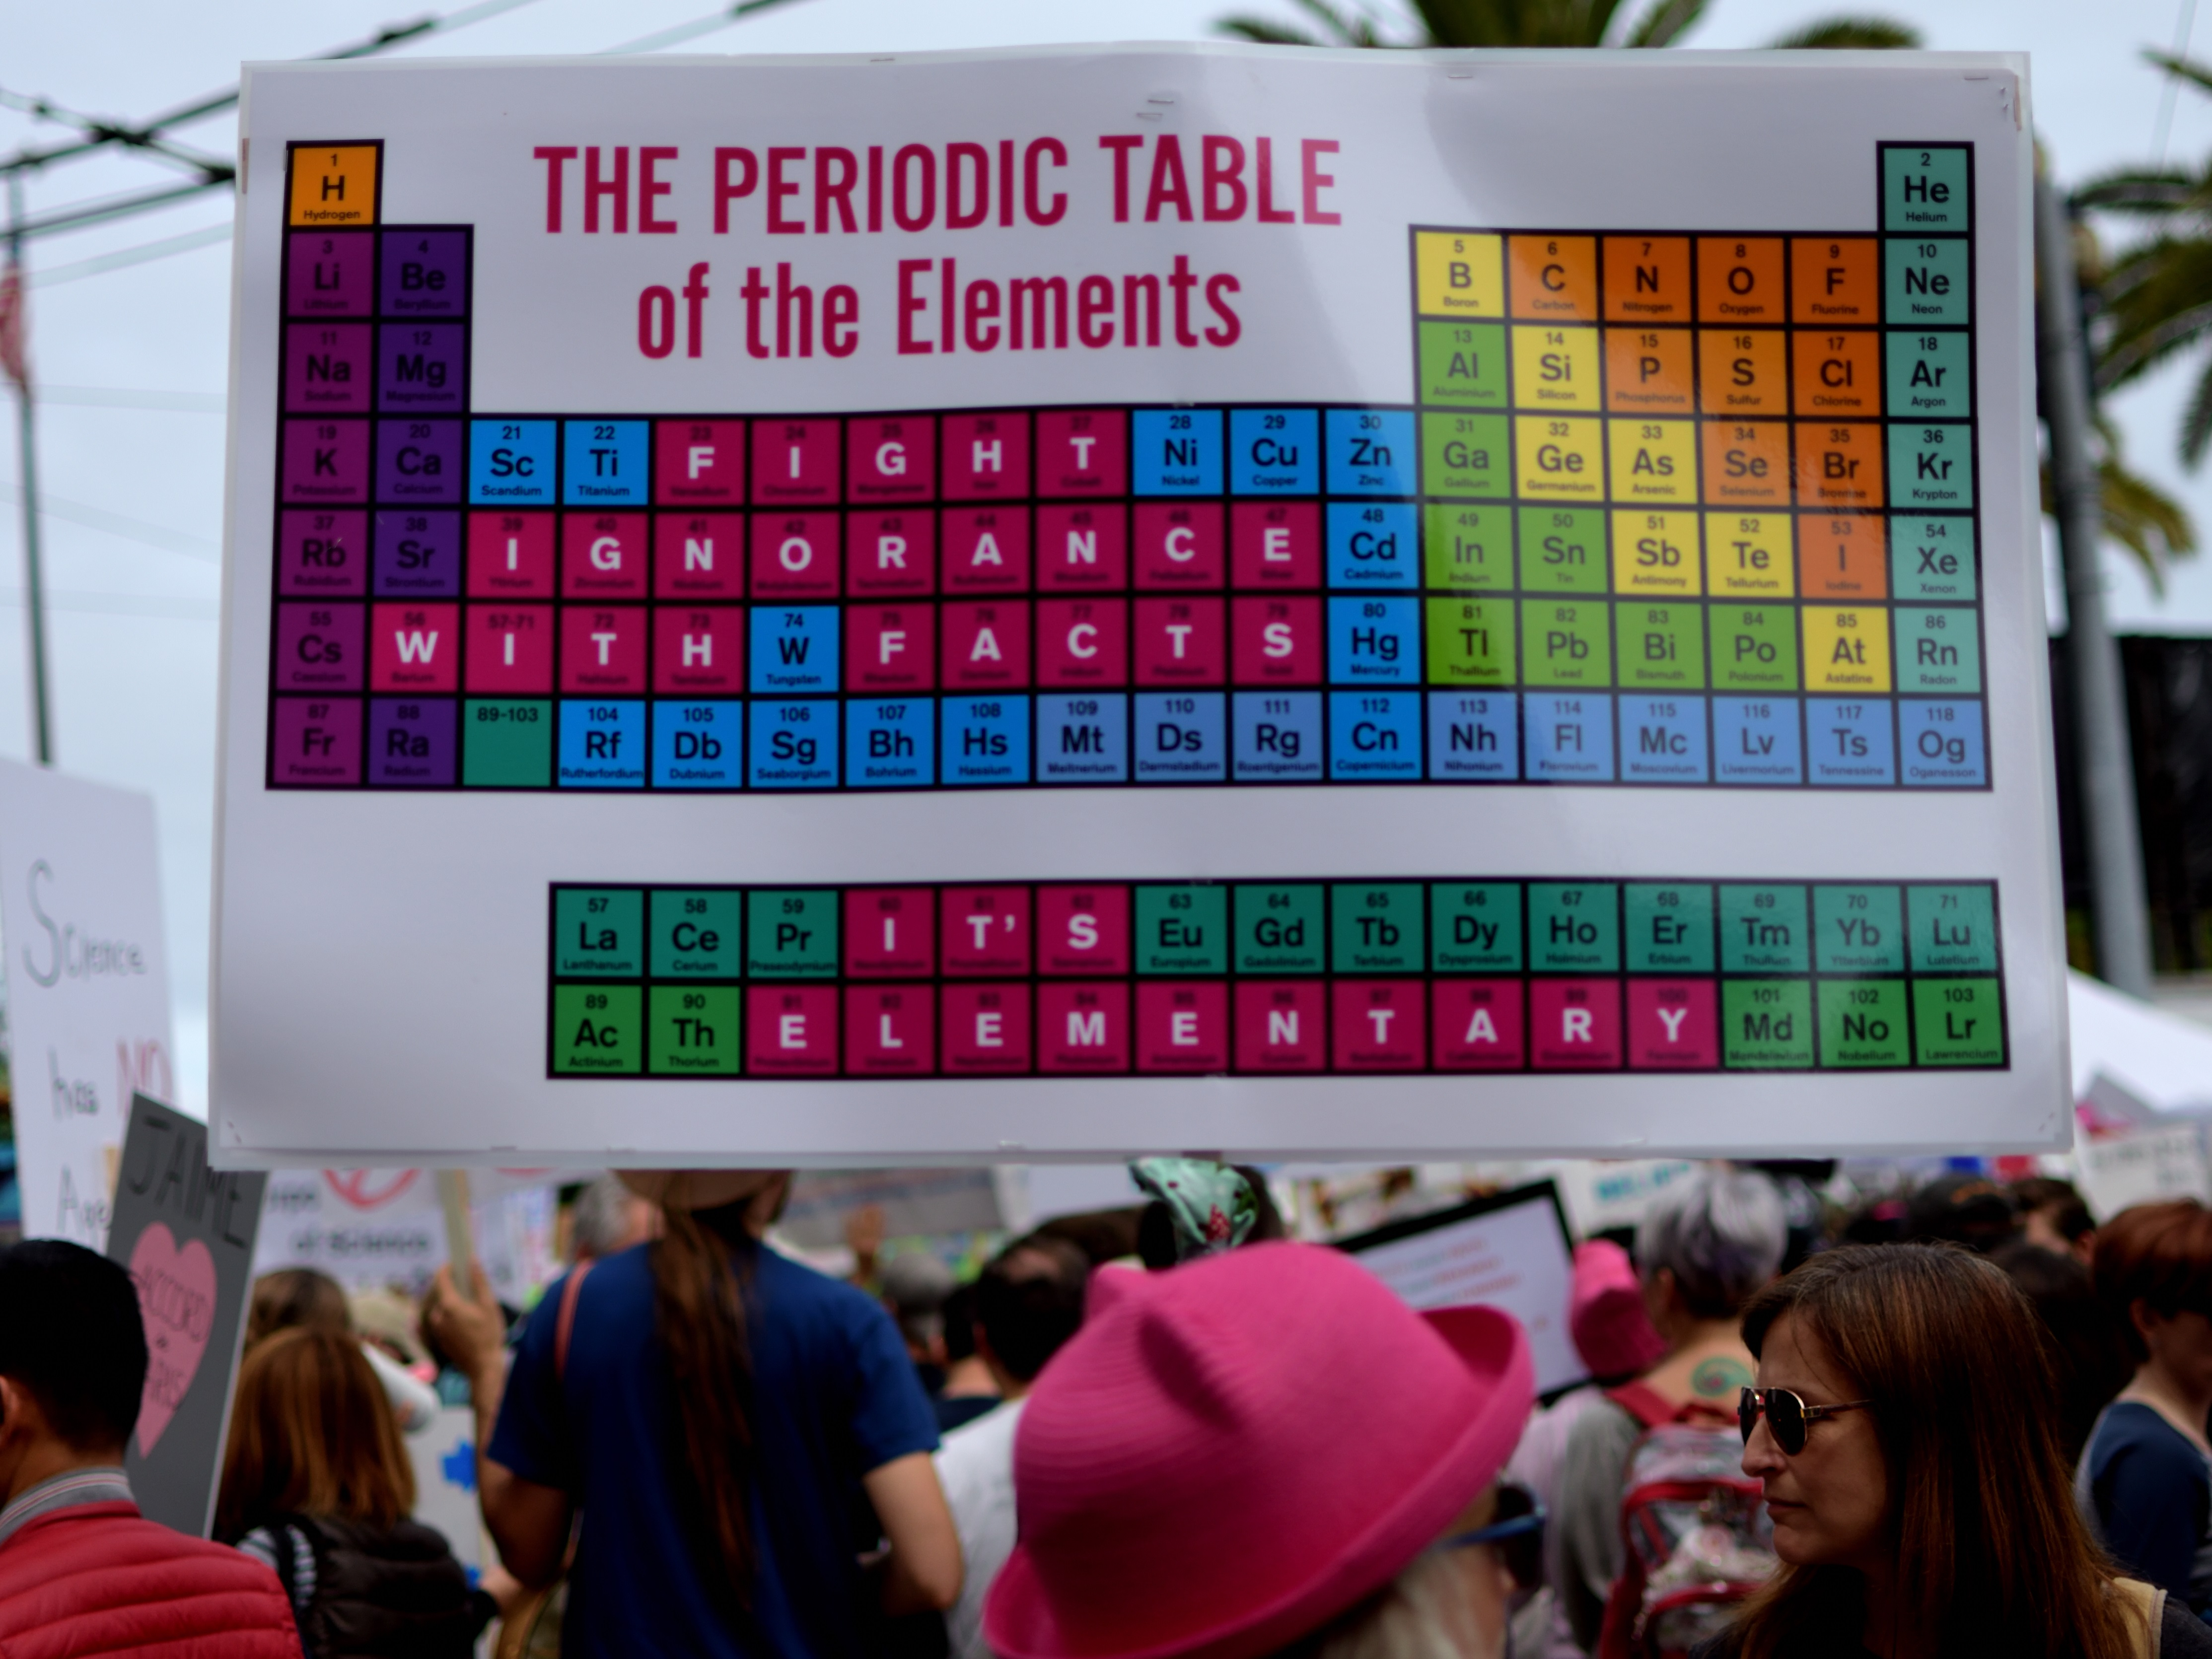 A sign from the March for Science in San Francisco, California, on 22 April 2017. Photo: Tom Hilton/Flickr (CC BY 2.0)